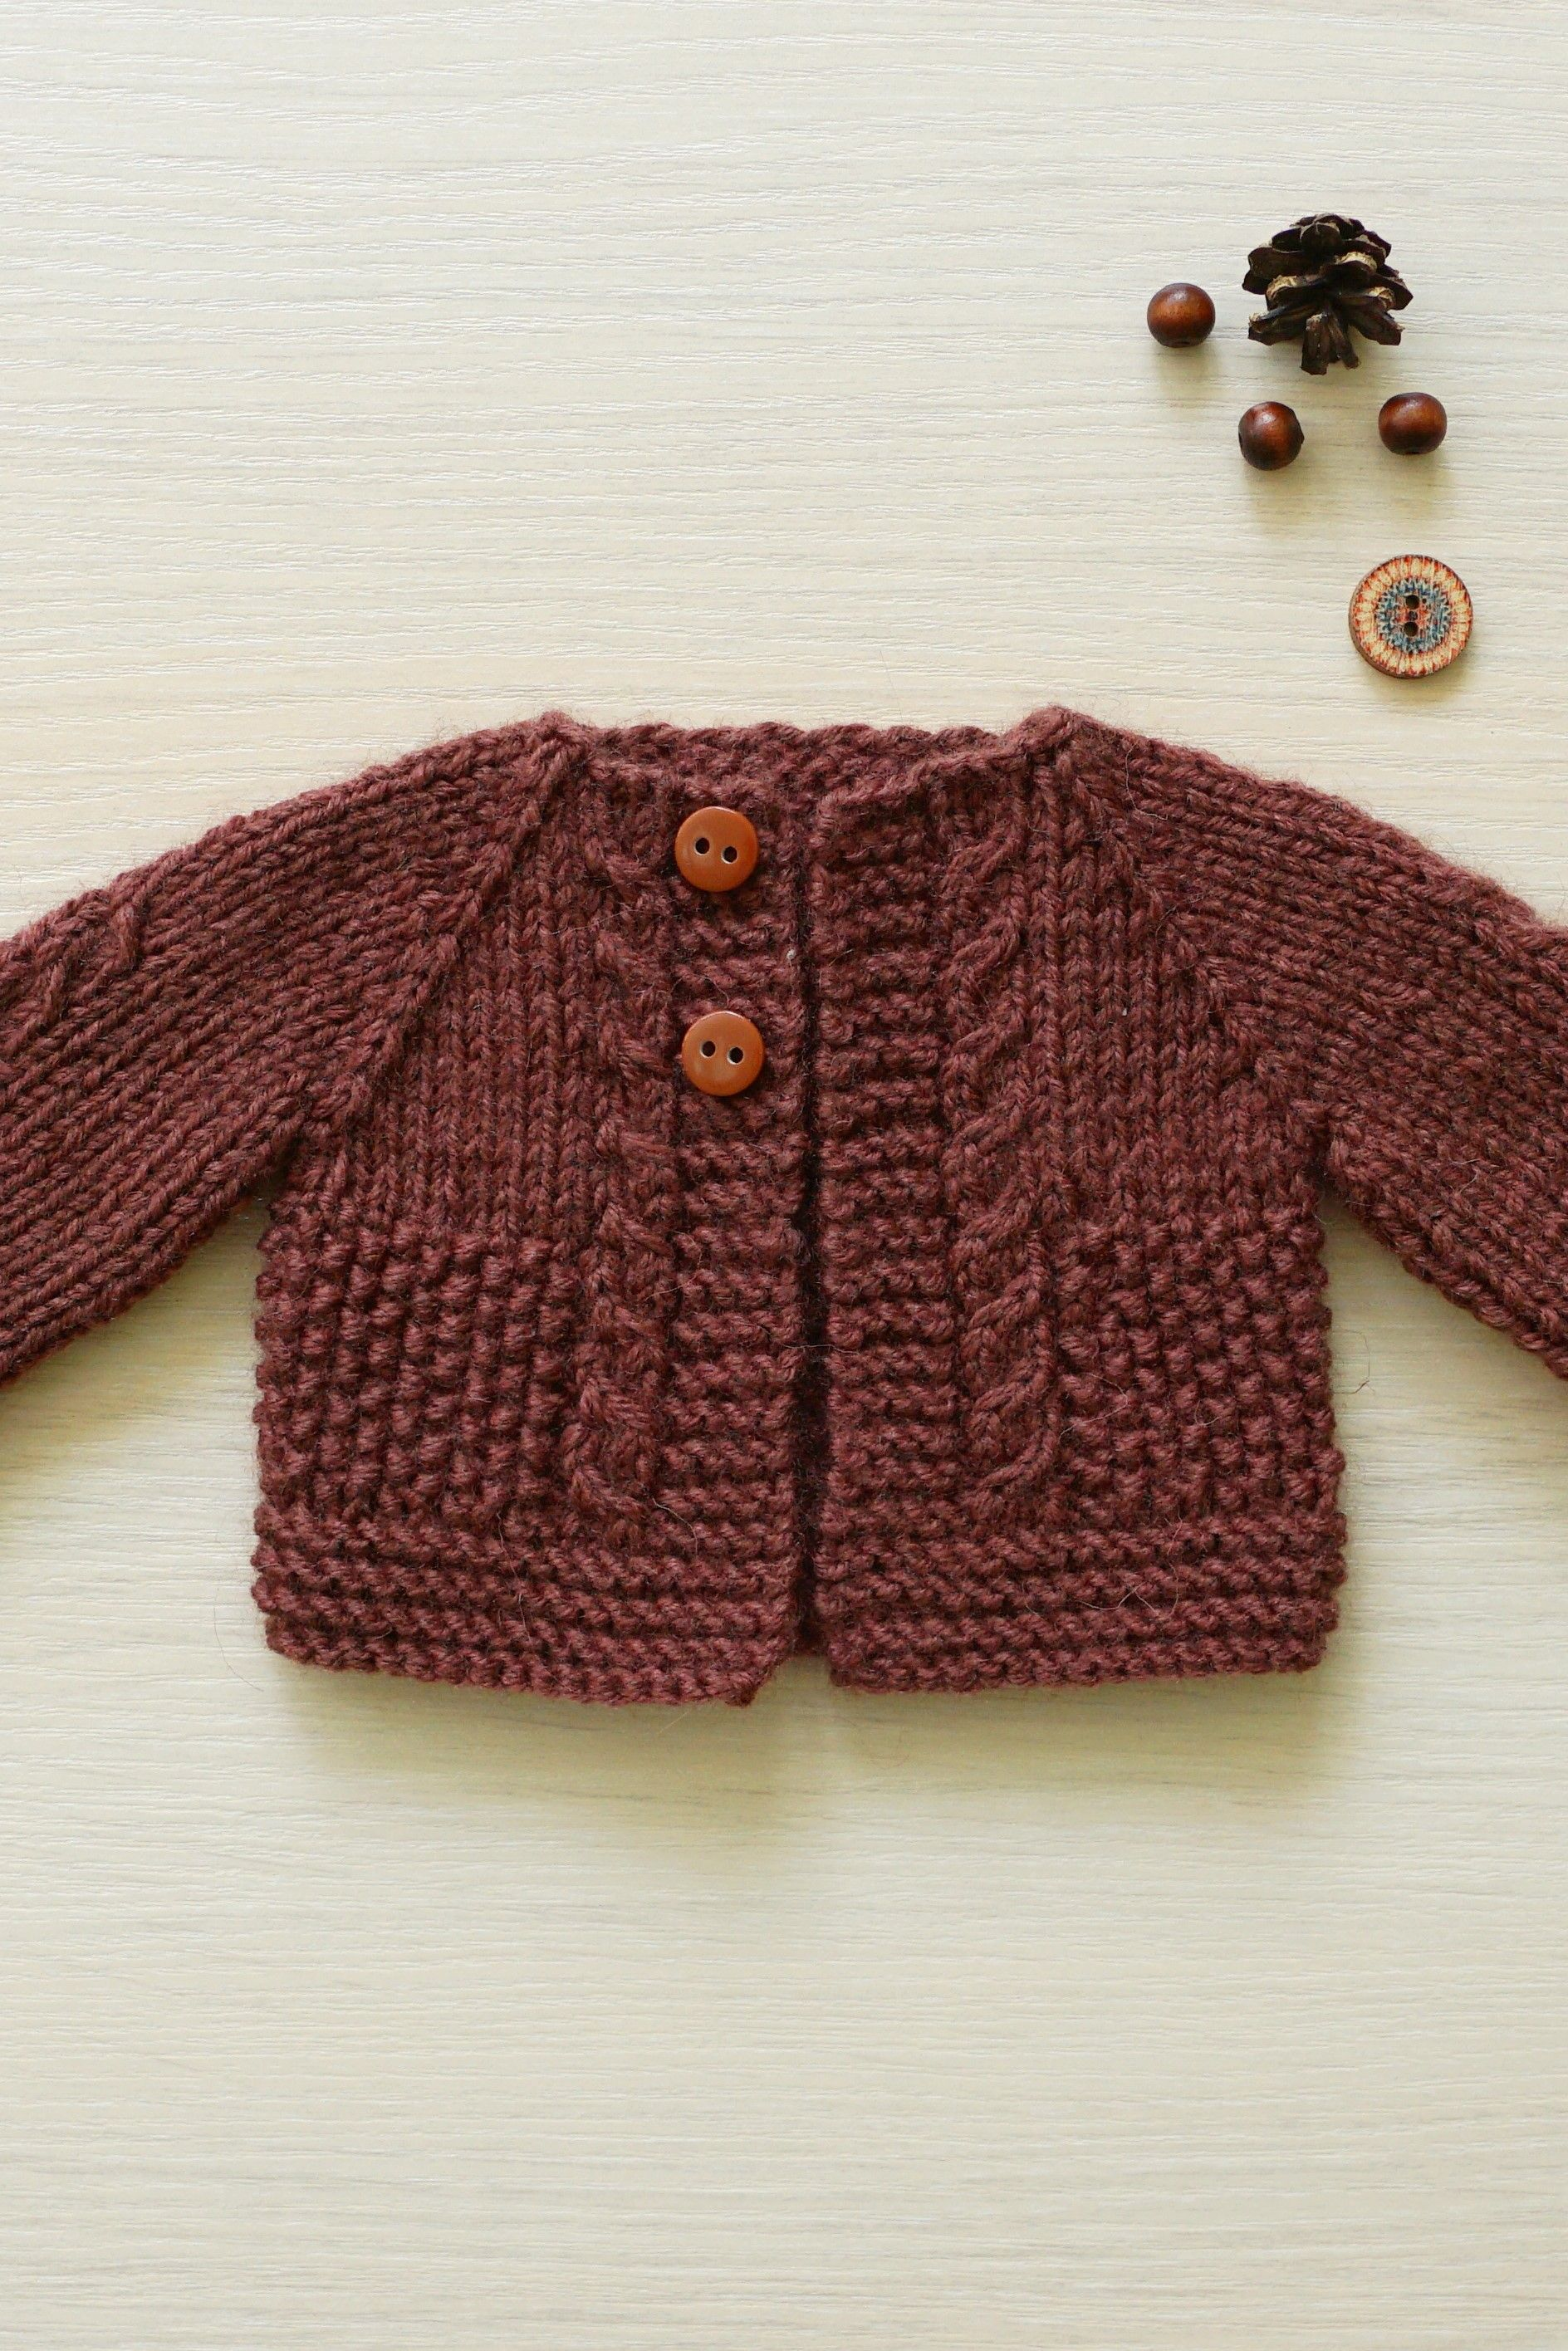 Cinnamon knitted doll cardigan, fit 11 16 inch 28 40 cm doll